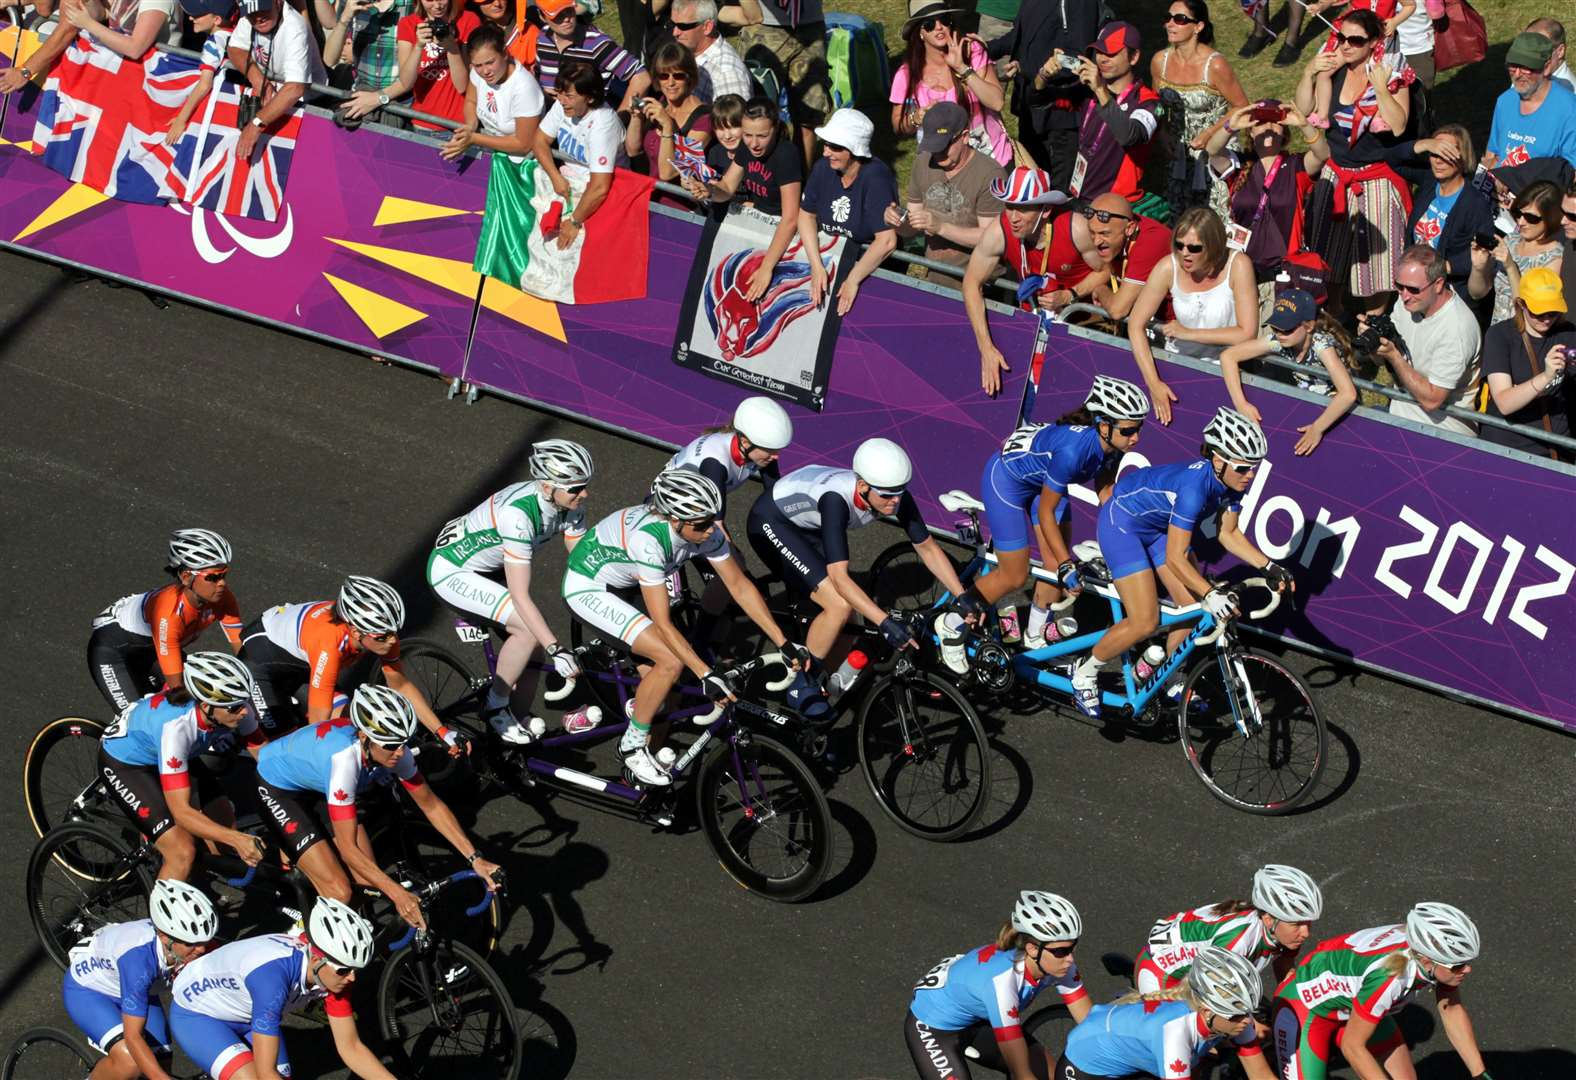 Competitors set out on the Women's Individual B Road Race at Brands Hatch during the Paralympics in 2012. Picture: Gareth Fuller/PA Wire